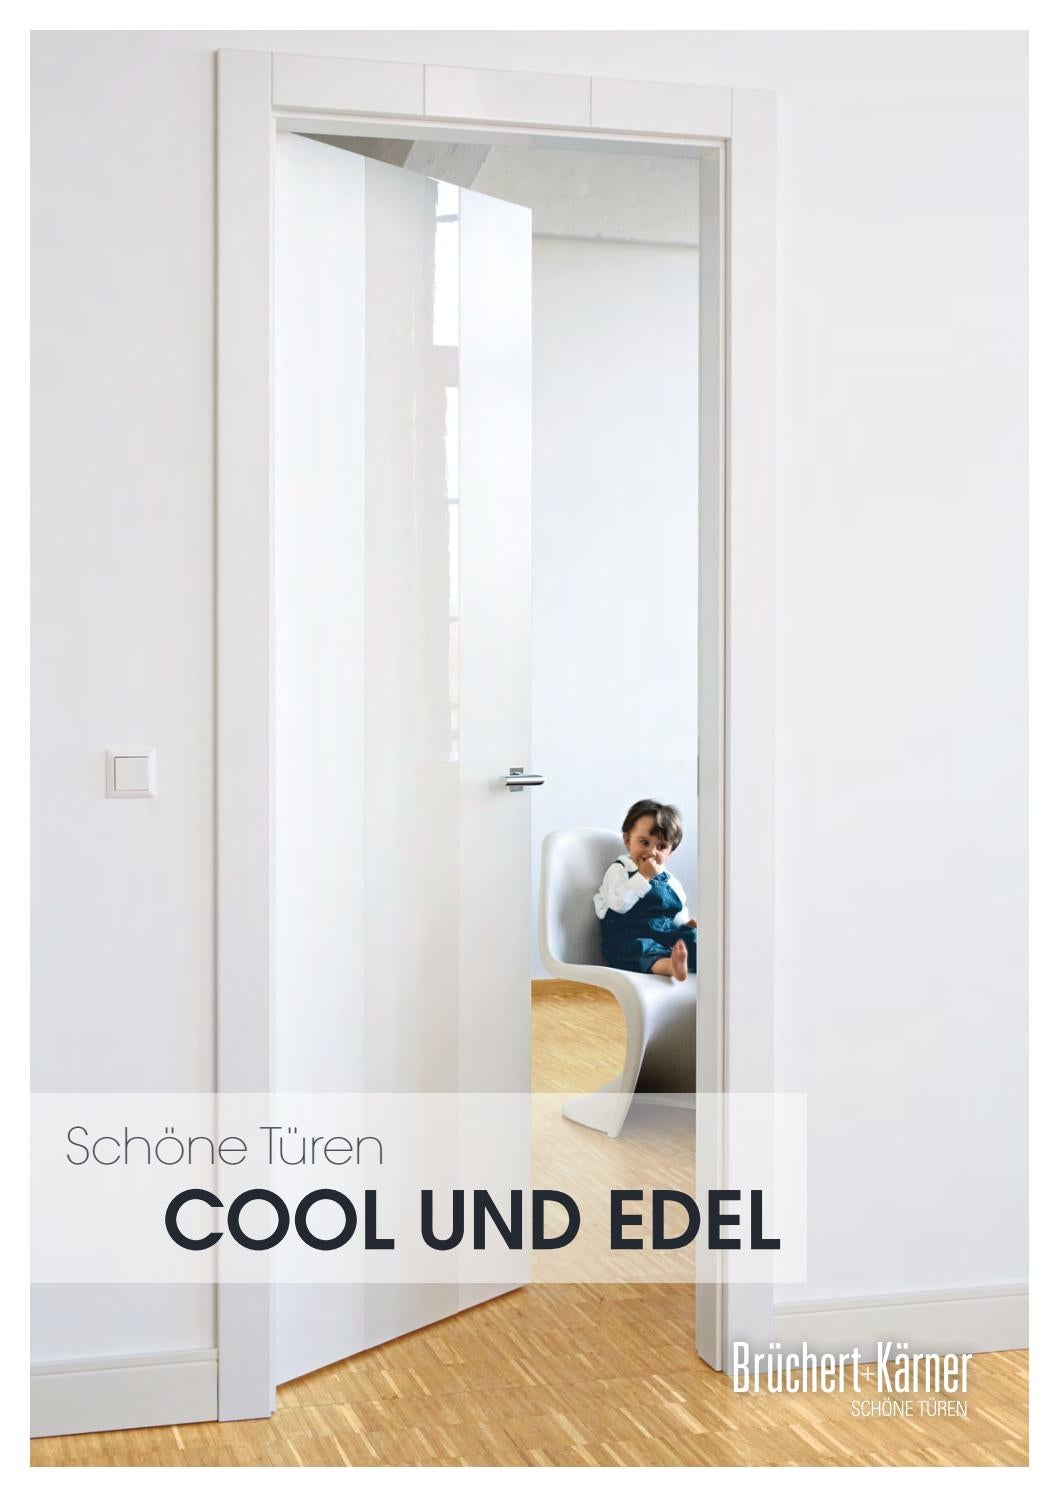 br chert k rner cool und edel by kaiser design issuu. Black Bedroom Furniture Sets. Home Design Ideas